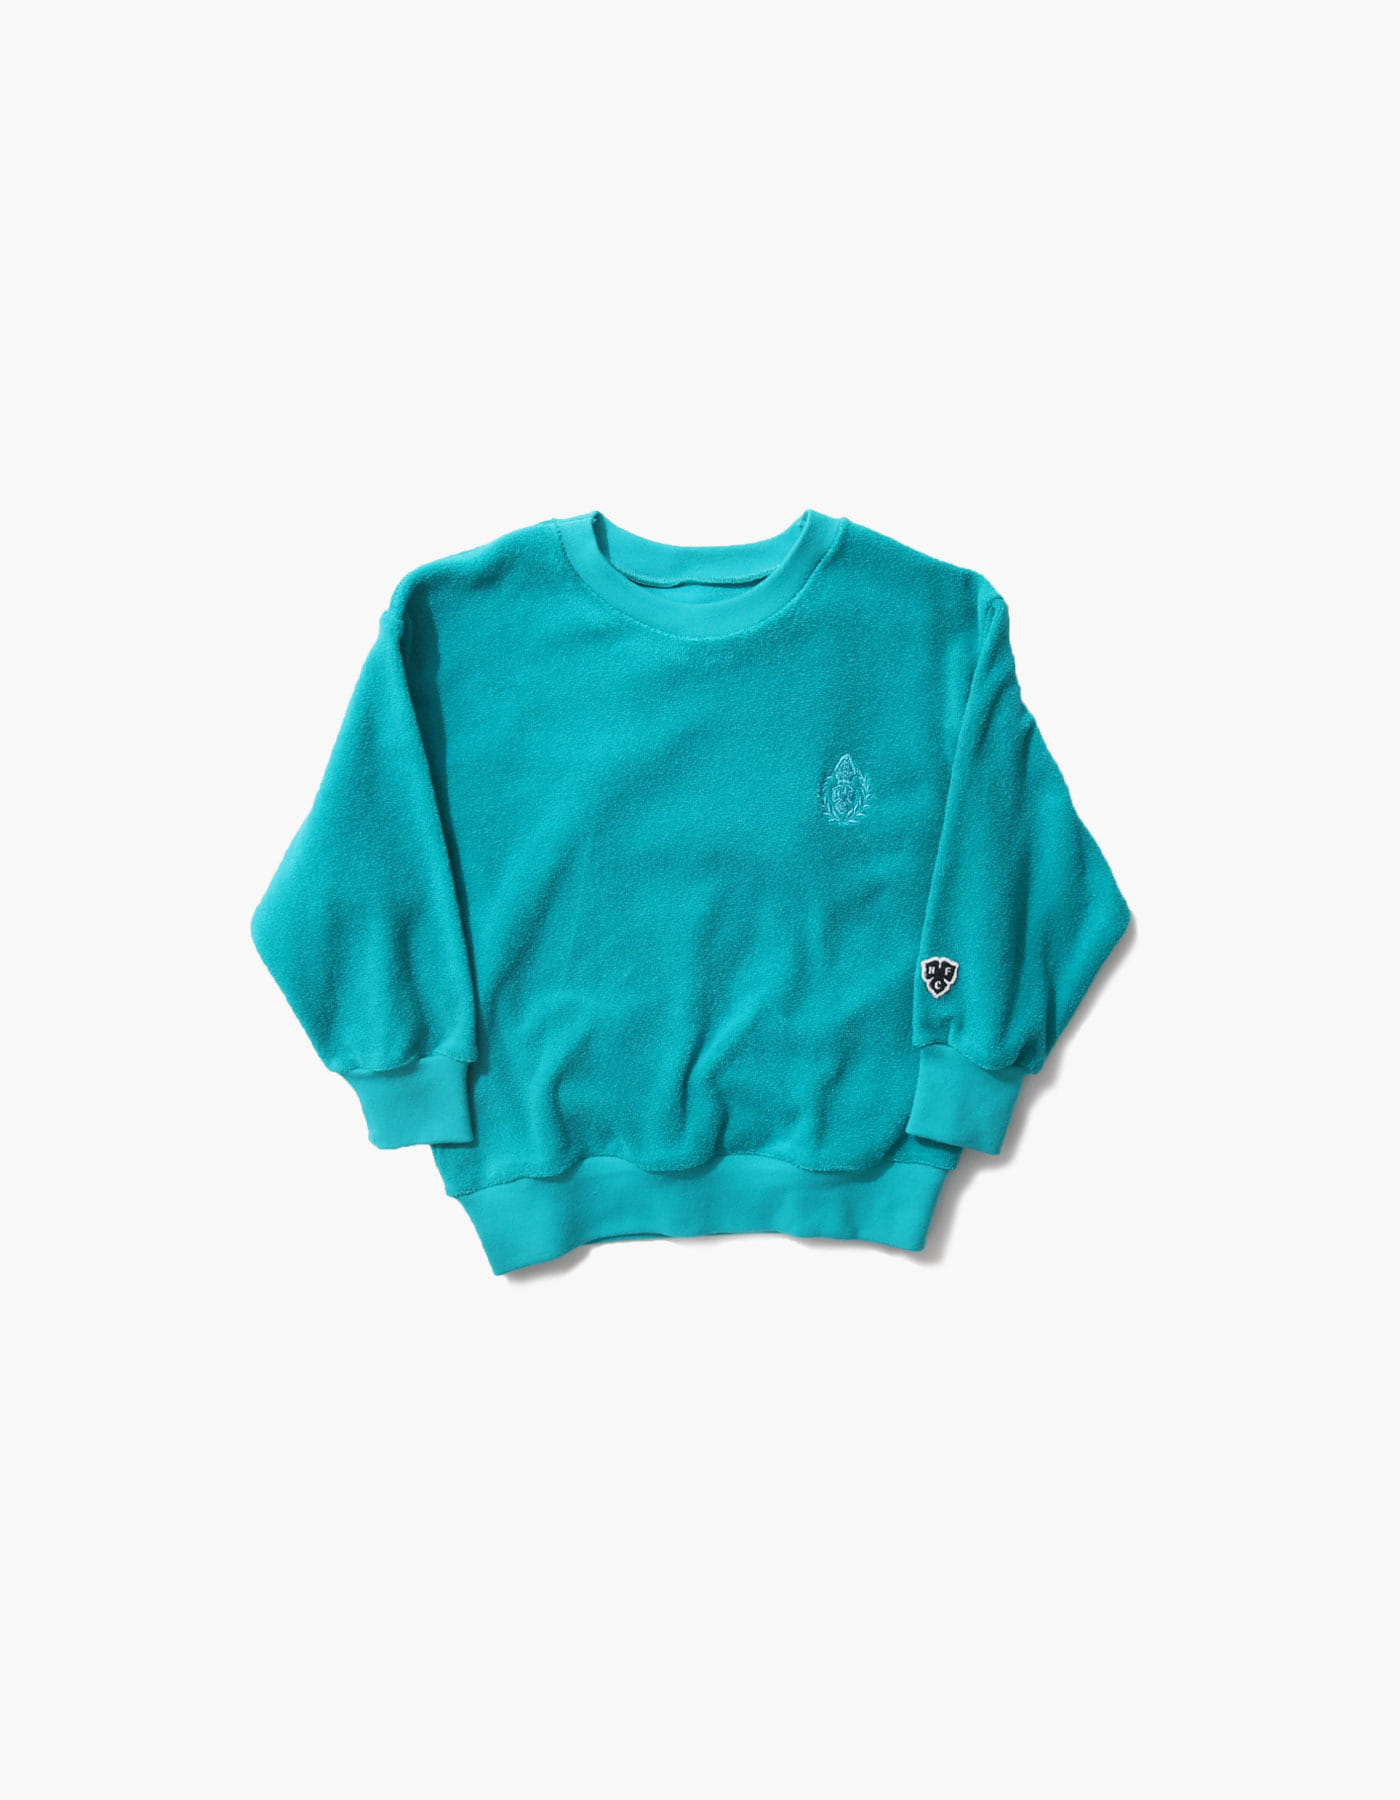 HFC CREST KIDS TOWEL CREWNECK / BLUE GREEN